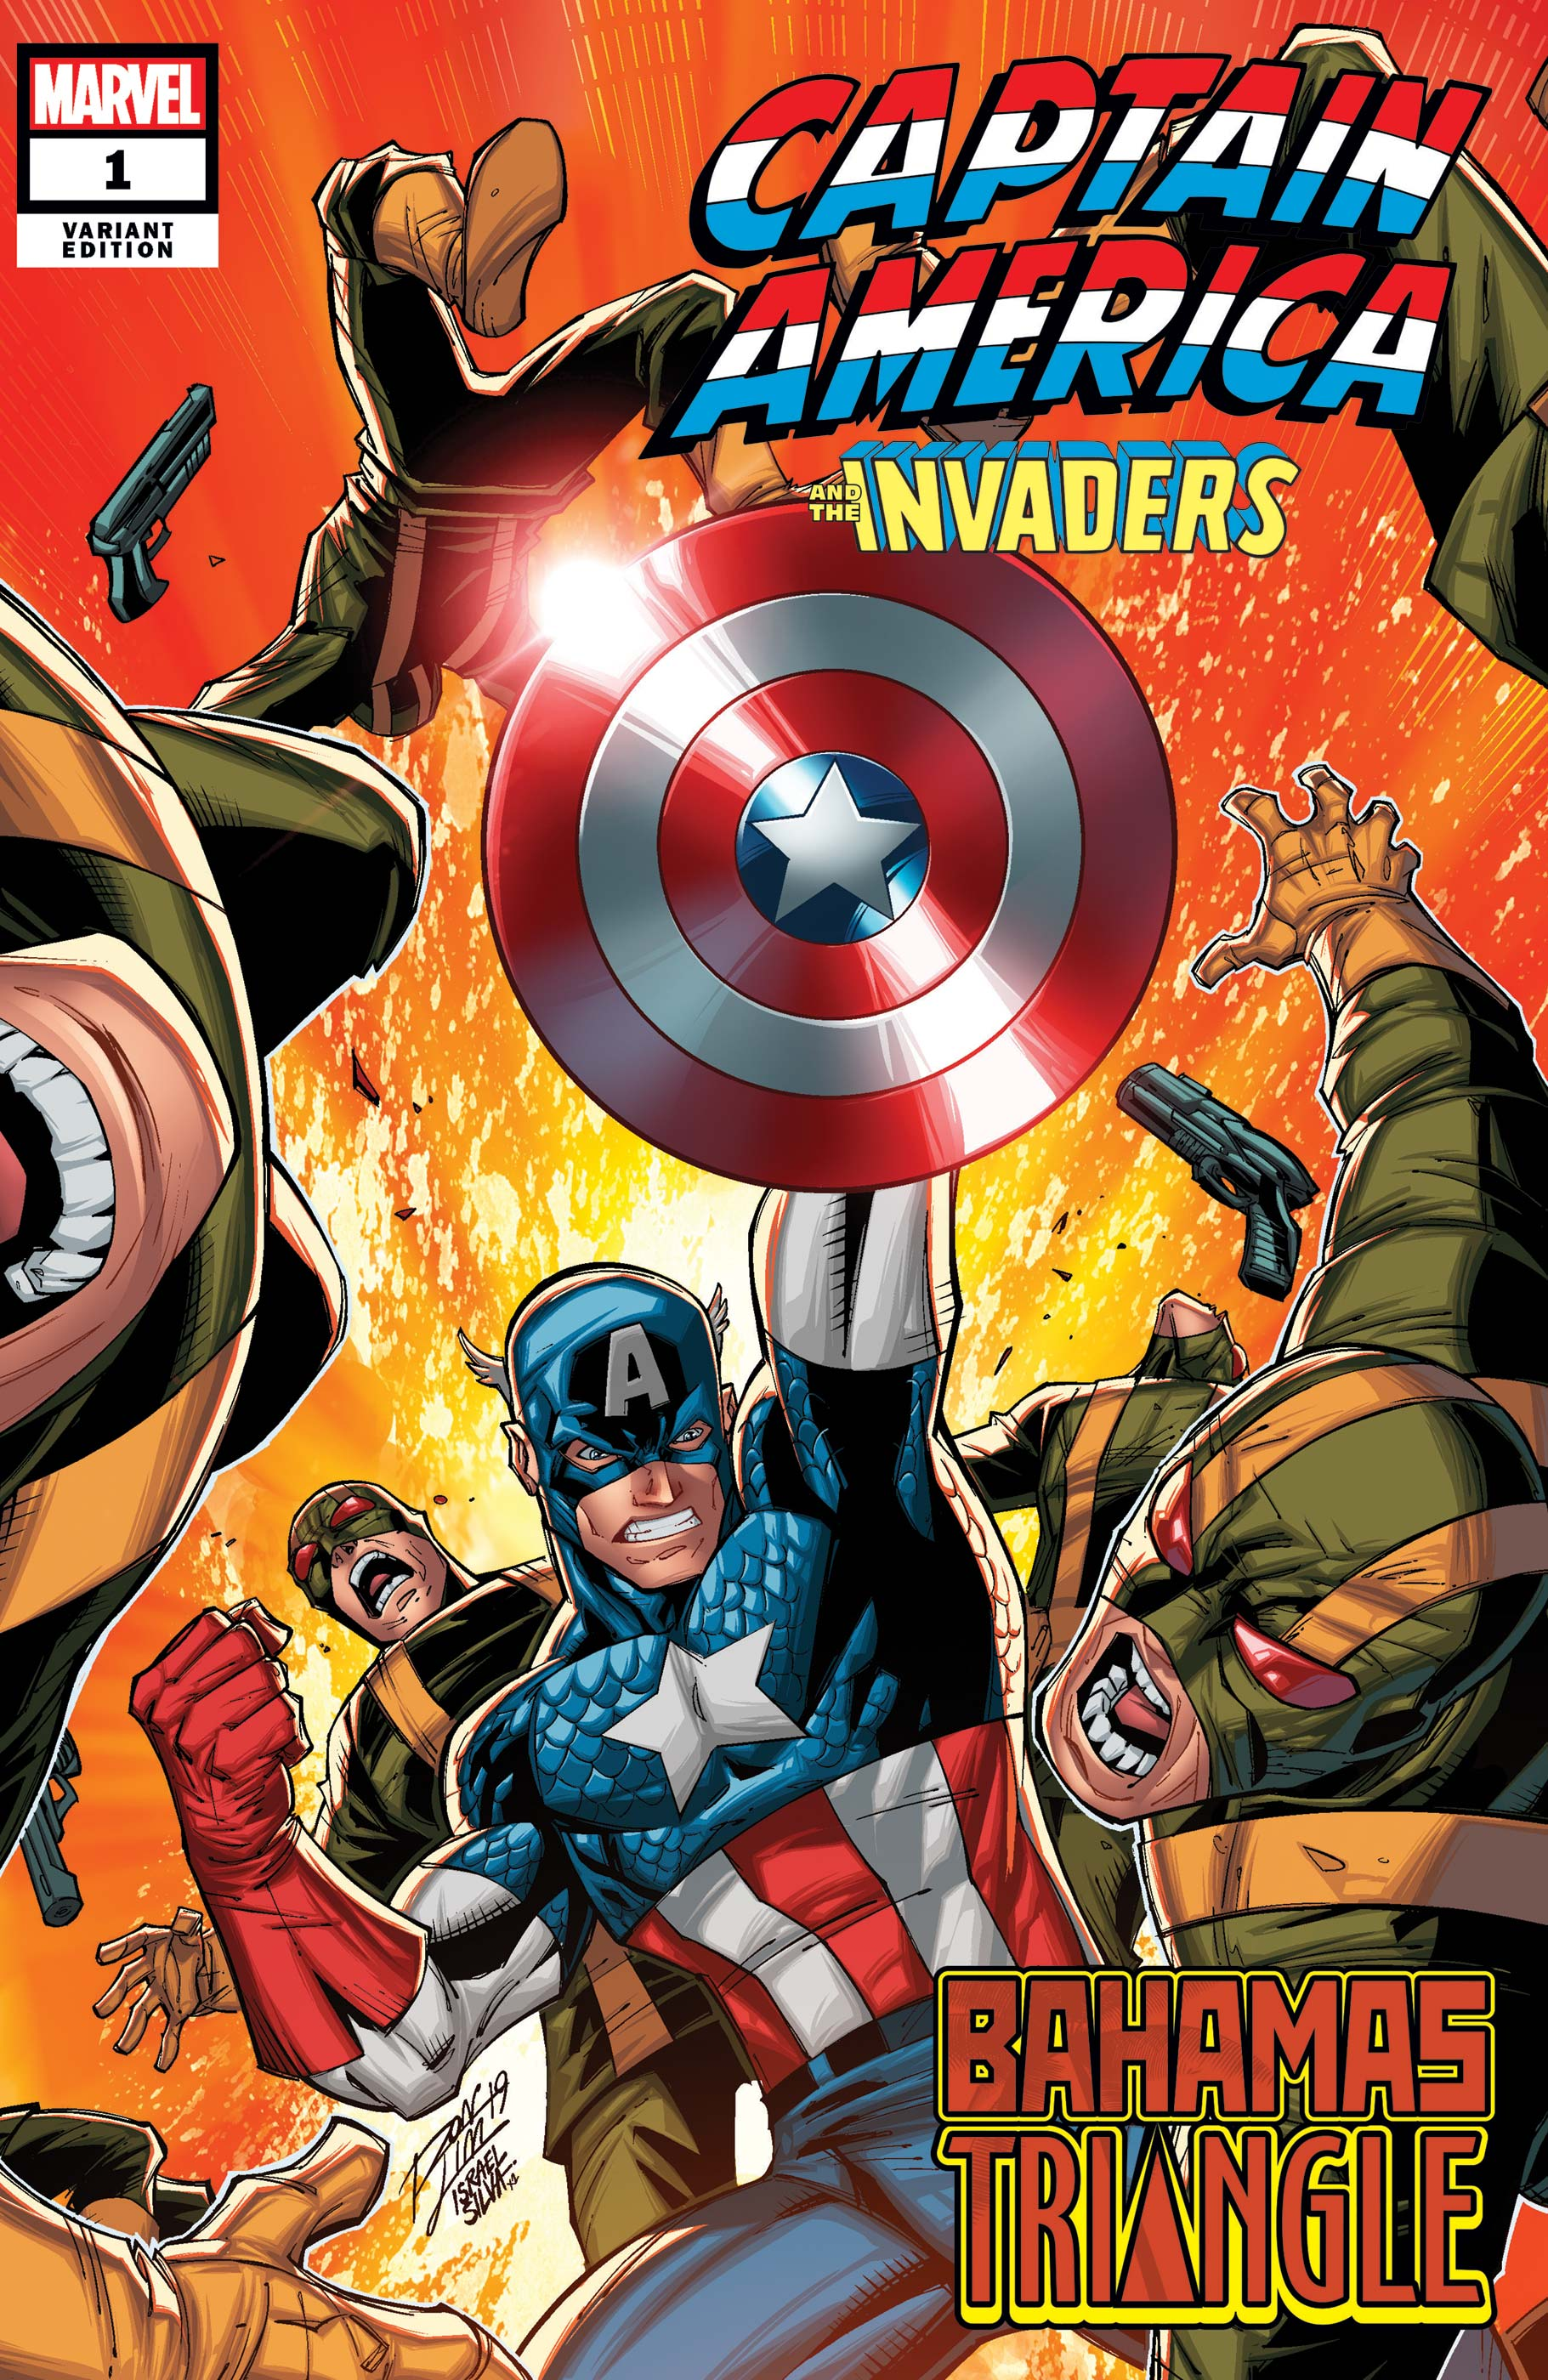 Captain America & The Invaders: Bahamas Triangle (2019) #1 (Variant)